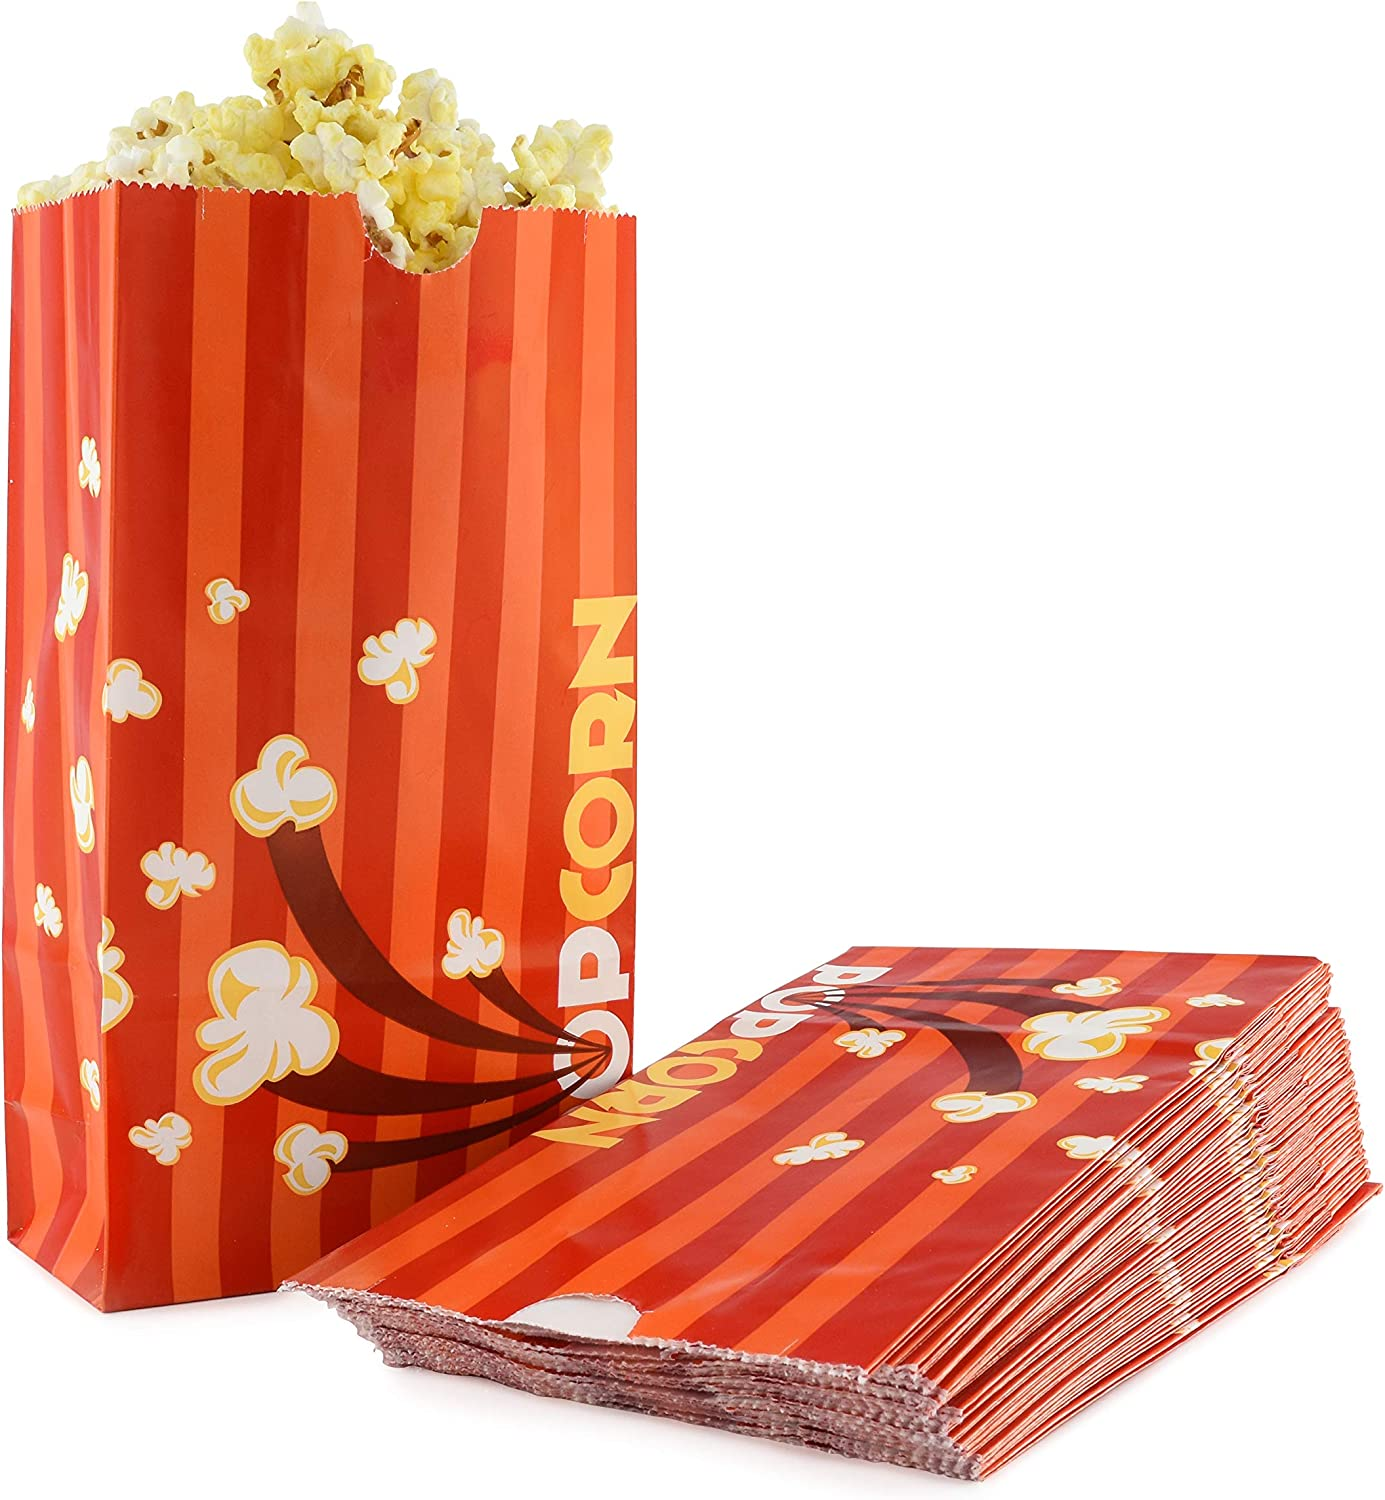 Amazon Com Snappy Popcorn Flat Bottom Theater Popcorn Bags 46 Oz 1000 Count Kitchen Dining